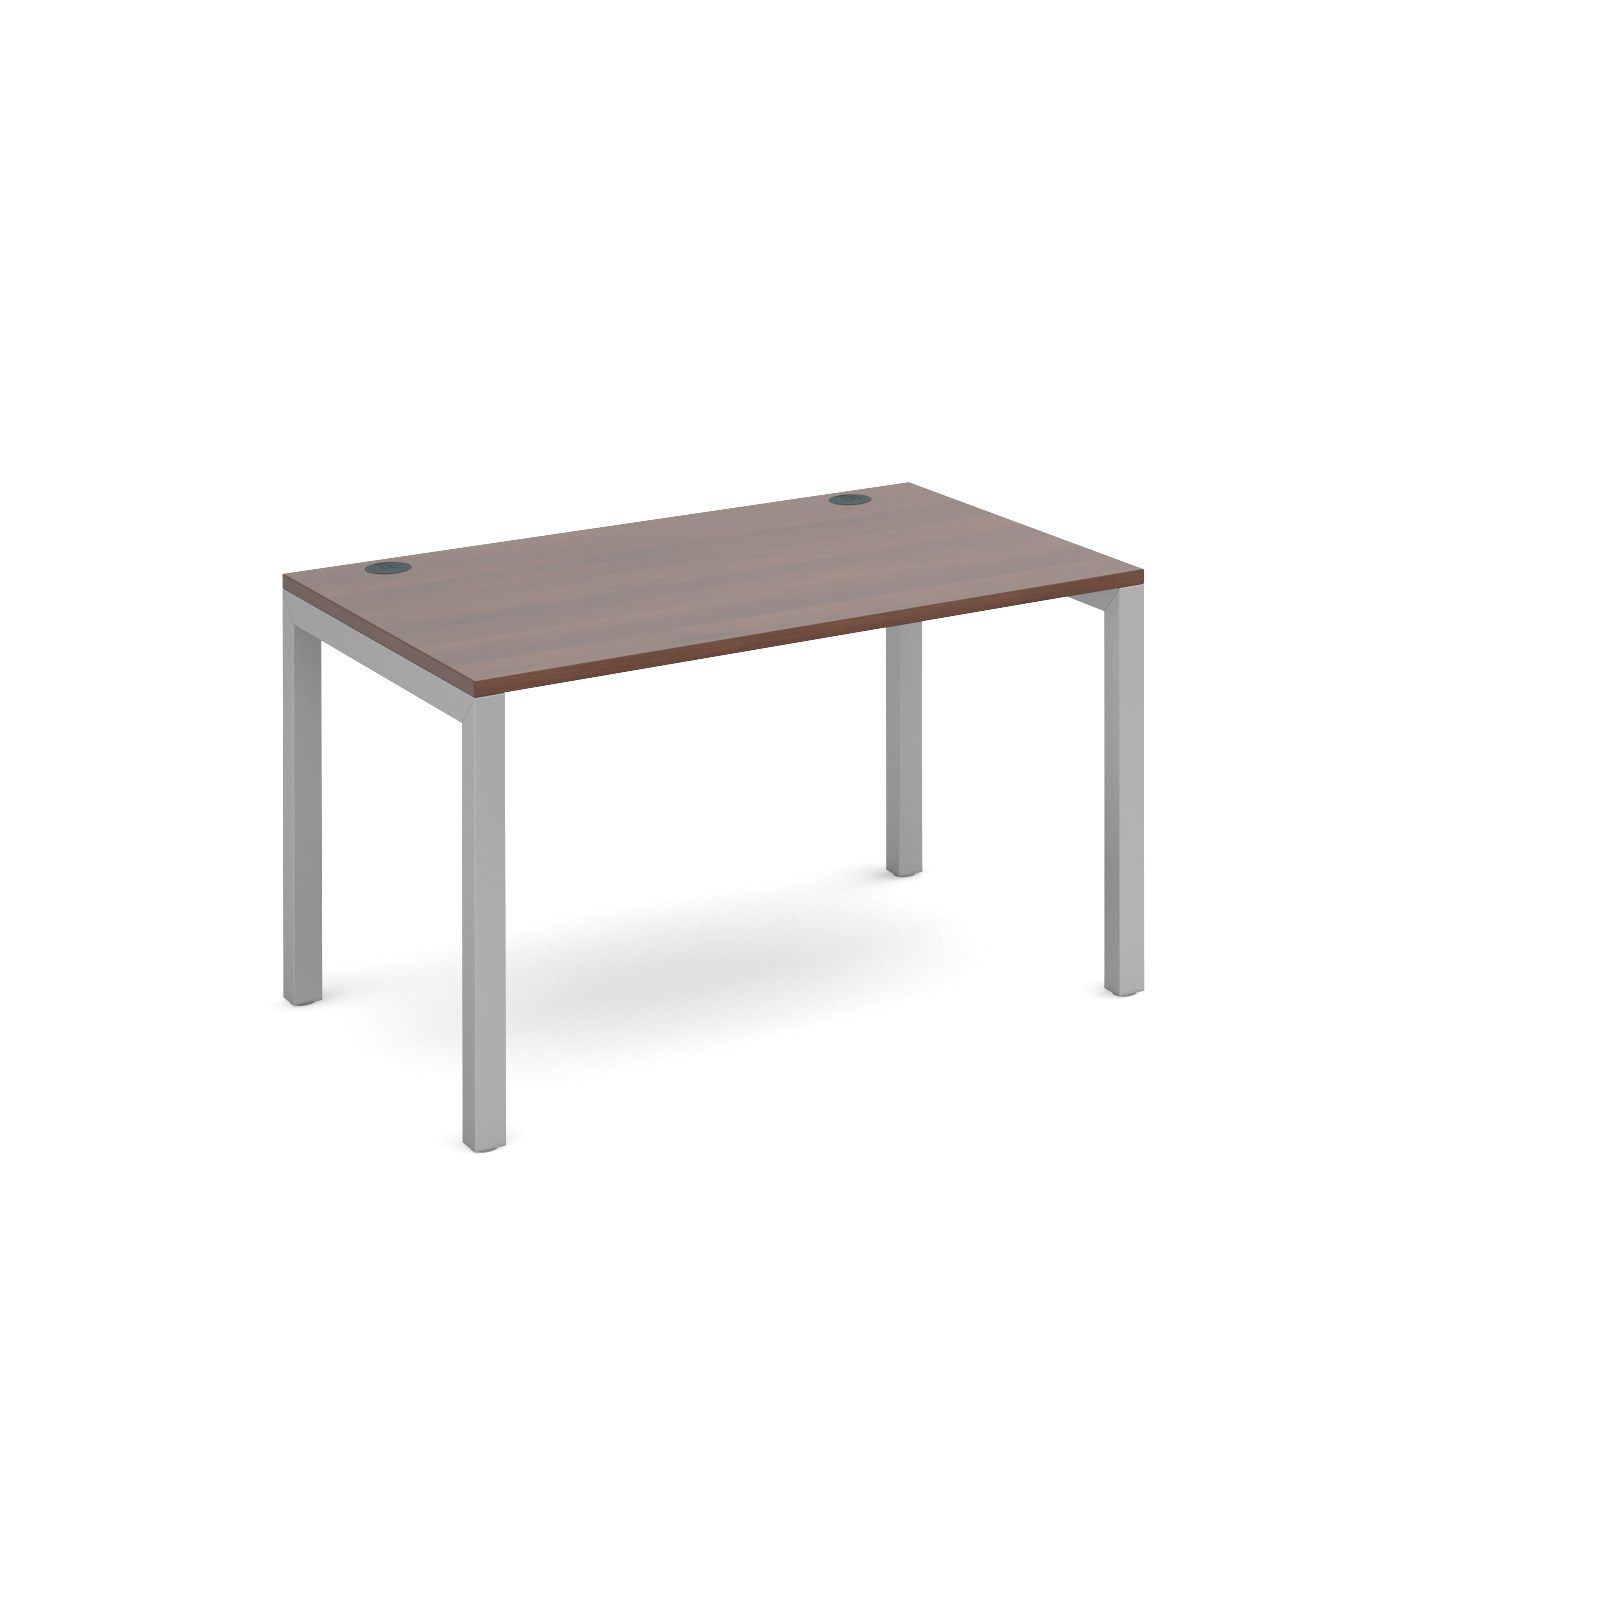 Dams Connex Walnut Single Bench Desk